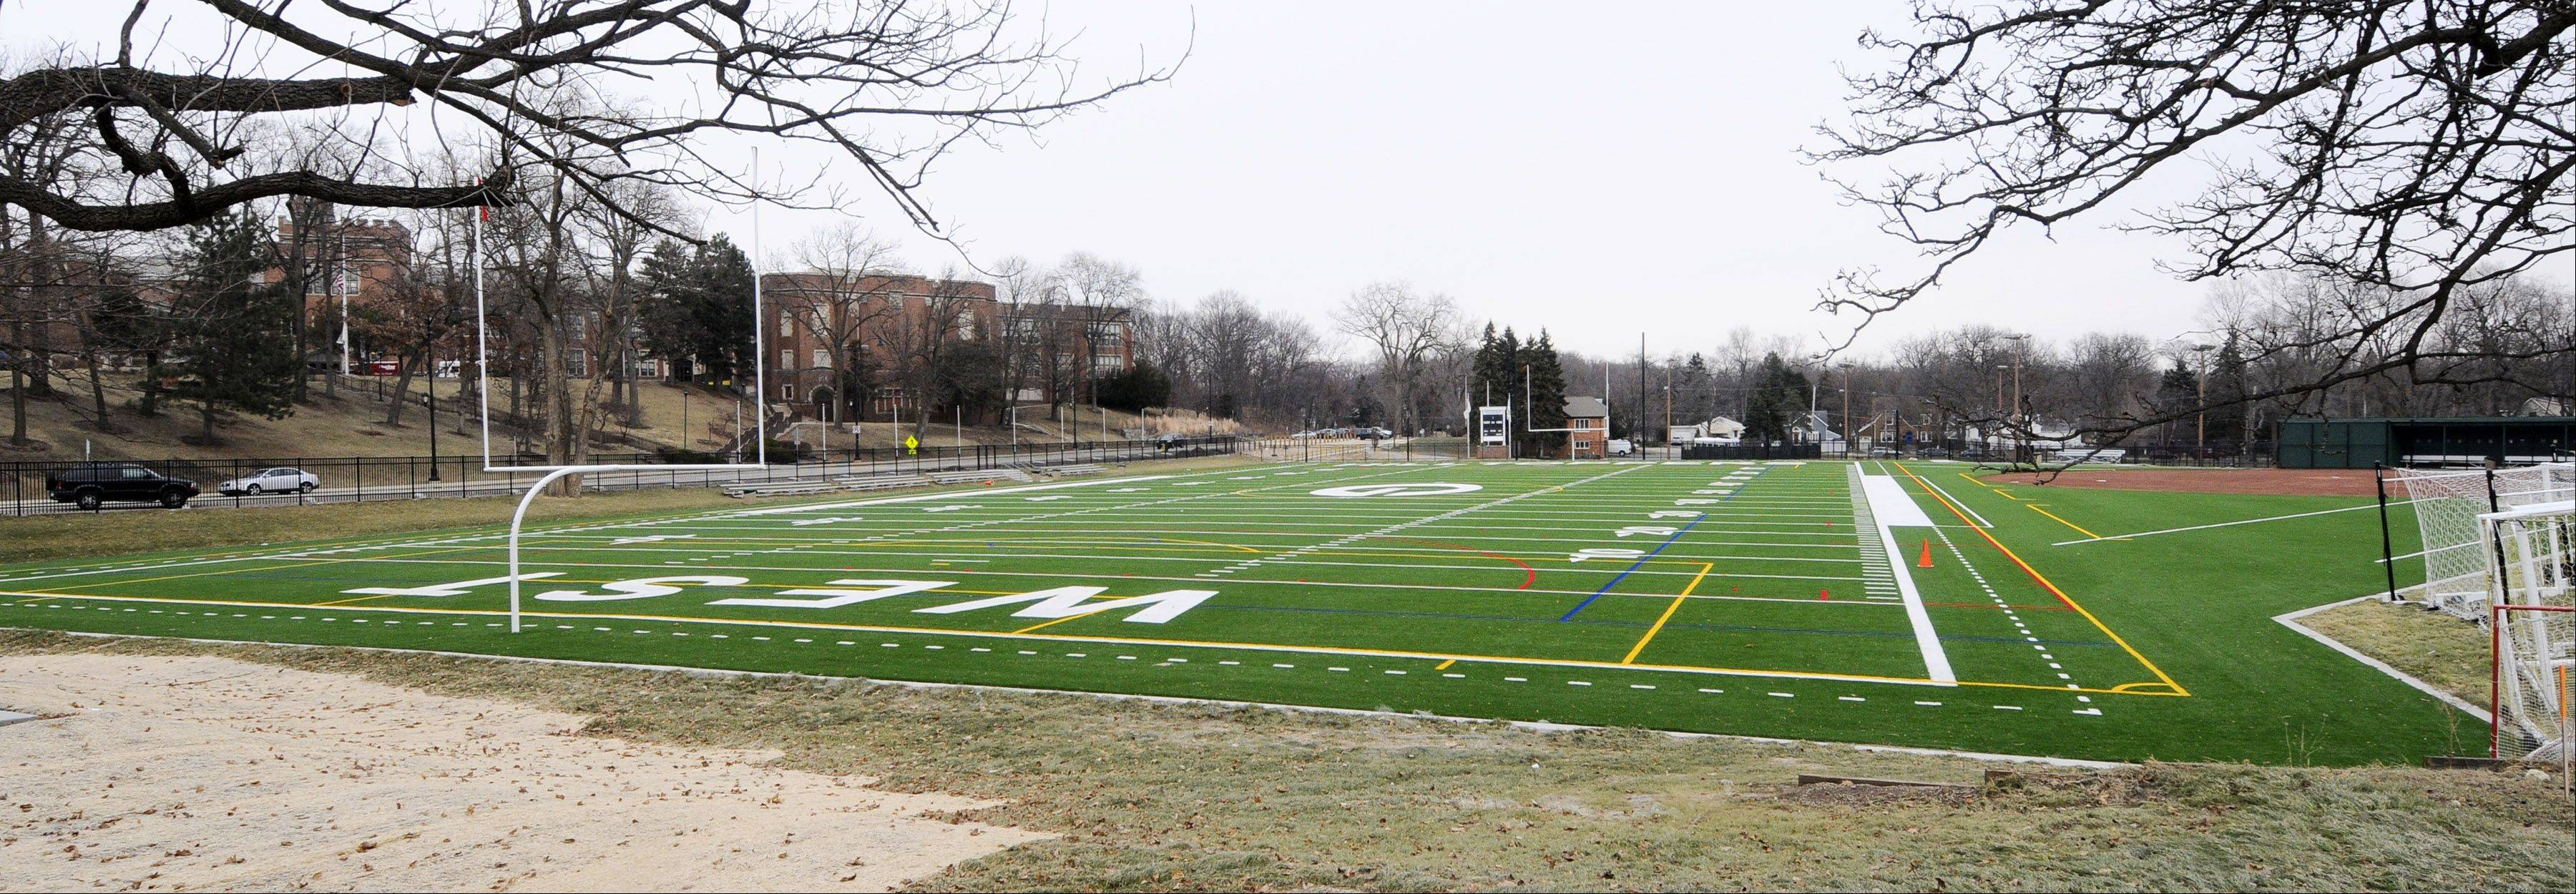 The debate over lights on Memorial Field